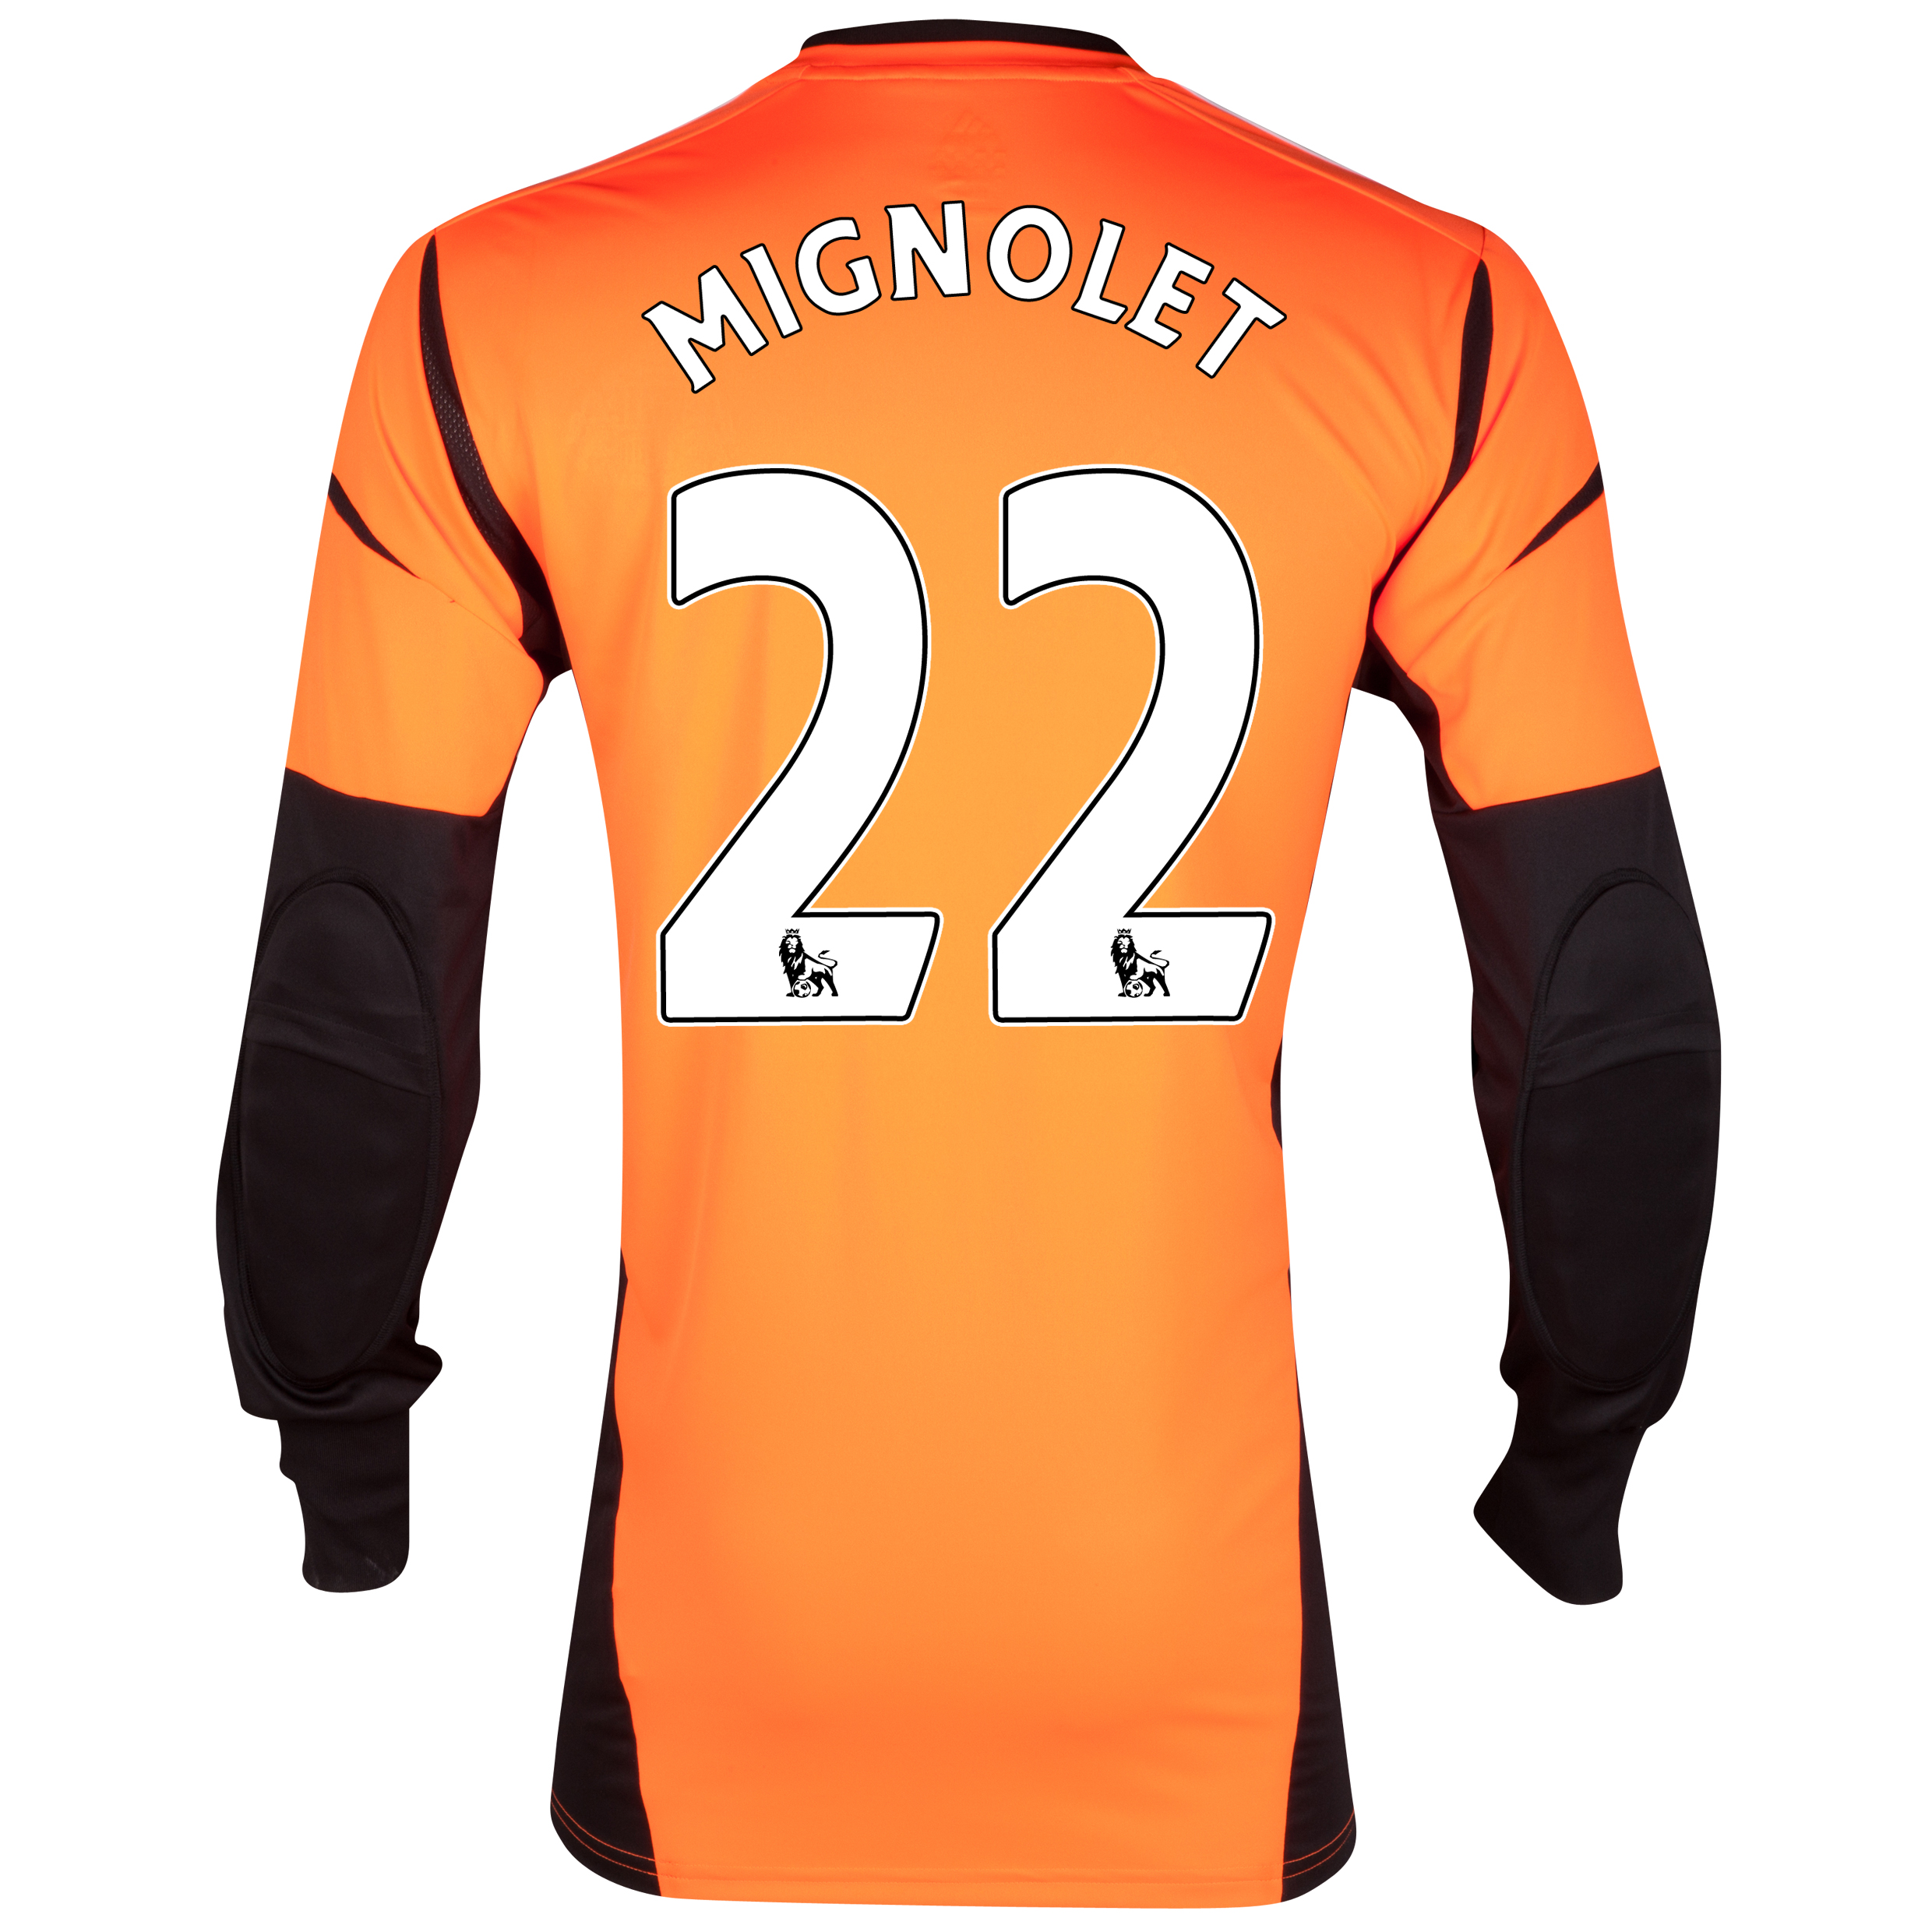 Sunderland Away GoalKeeper Shirt 2012/13 with Mignolet GK 22 printing